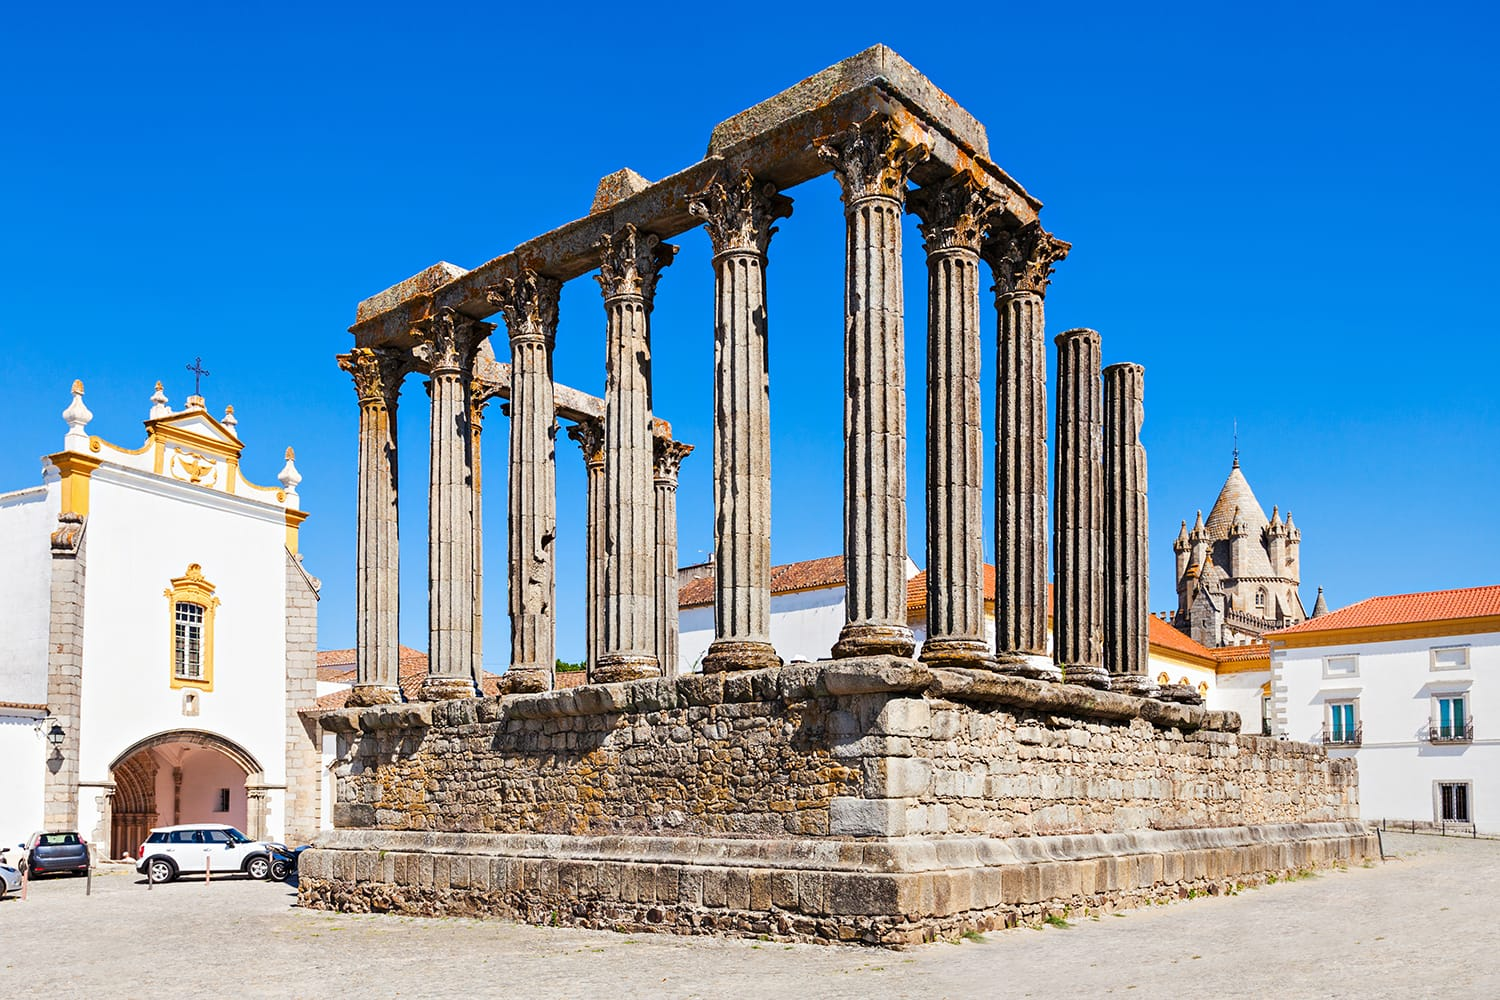 The Roman Temple of Evora (Templo romano de Evora), also referred to as the Templo de Diana is an ancient temple in the Portuguese city of Evora